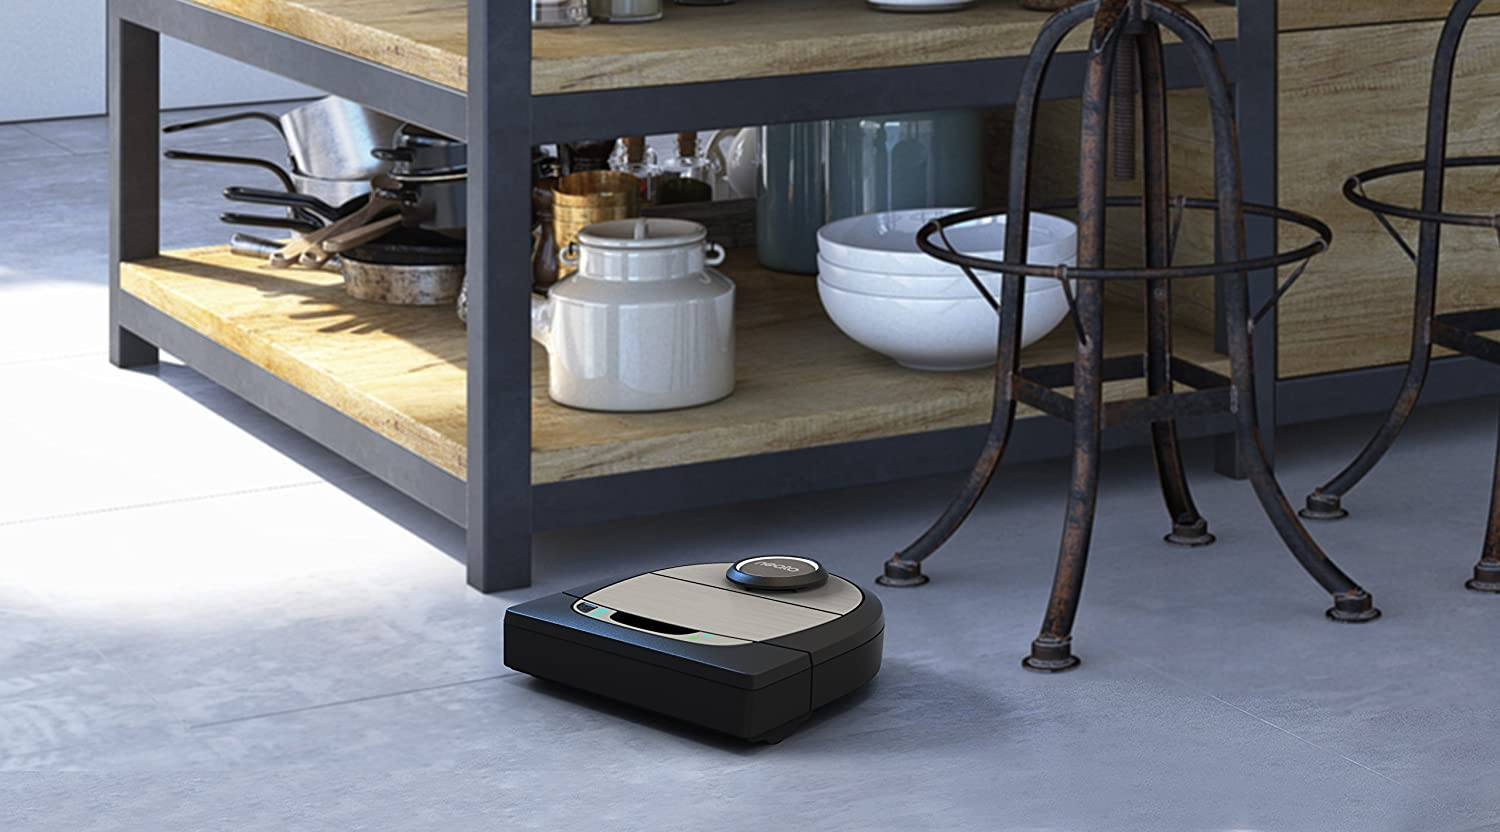 Neato Robotics D7 Robot Vacuum Cleaner